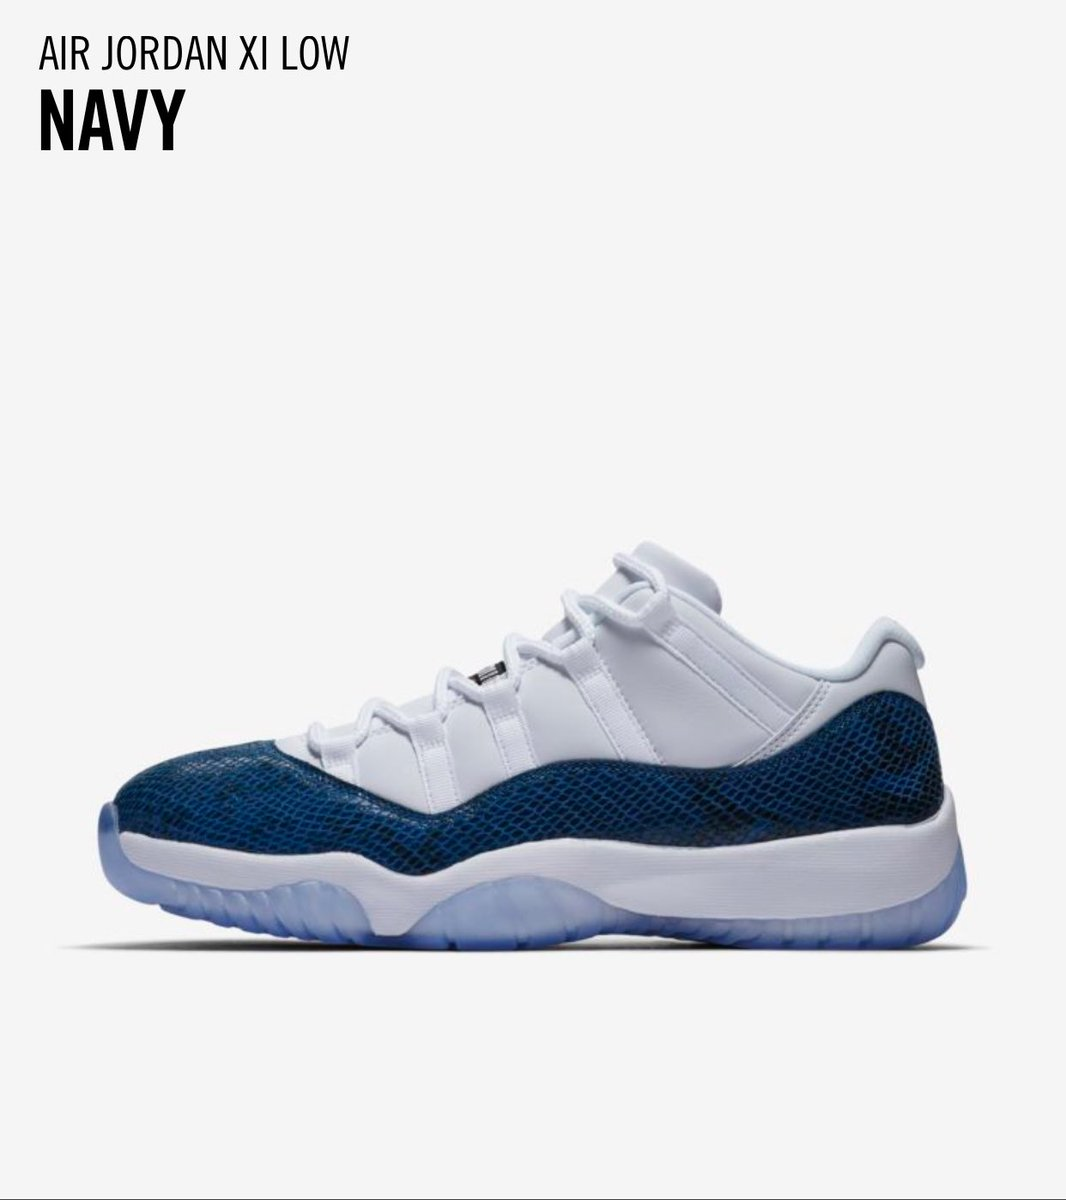 saykev's photo on SNKRS